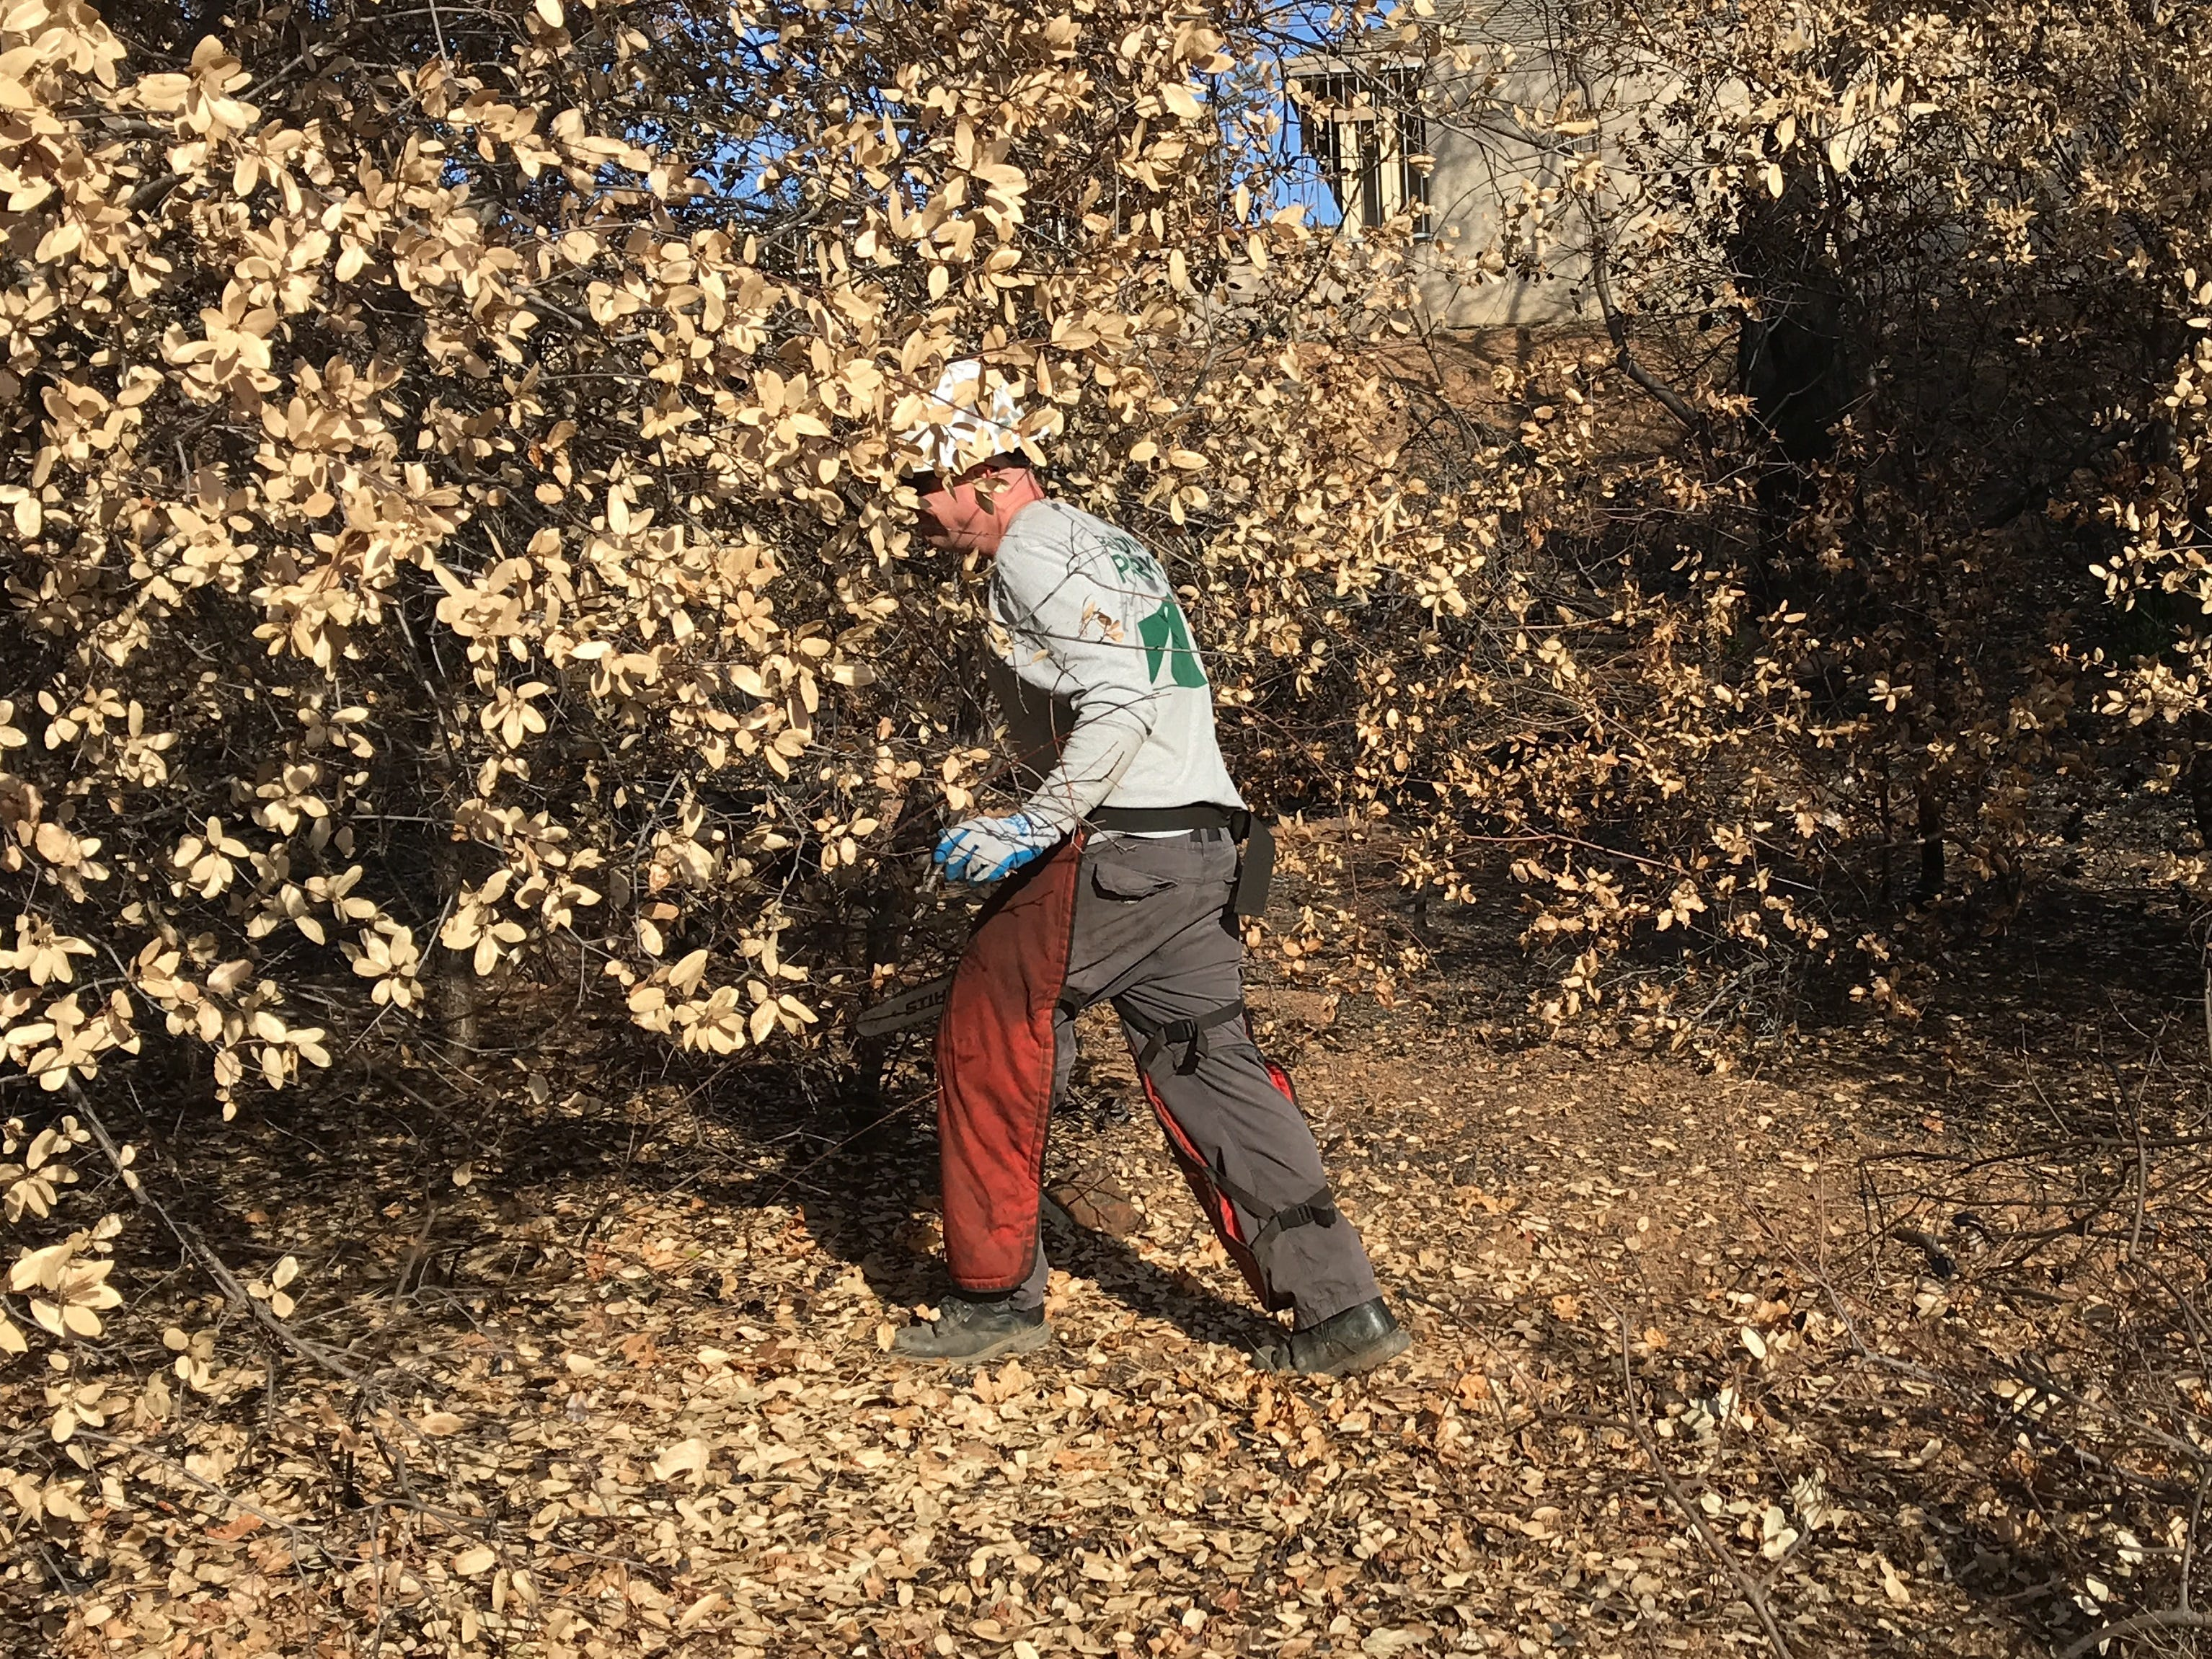 A city of Redding parks employee uses a chainsaw to thin out brush on a hillside in the Mary Lake subdivision on Oct. 26. The city worked with nearly 60 students from Bethel Church's School of Supernatural Ministry on a brush-removal project.